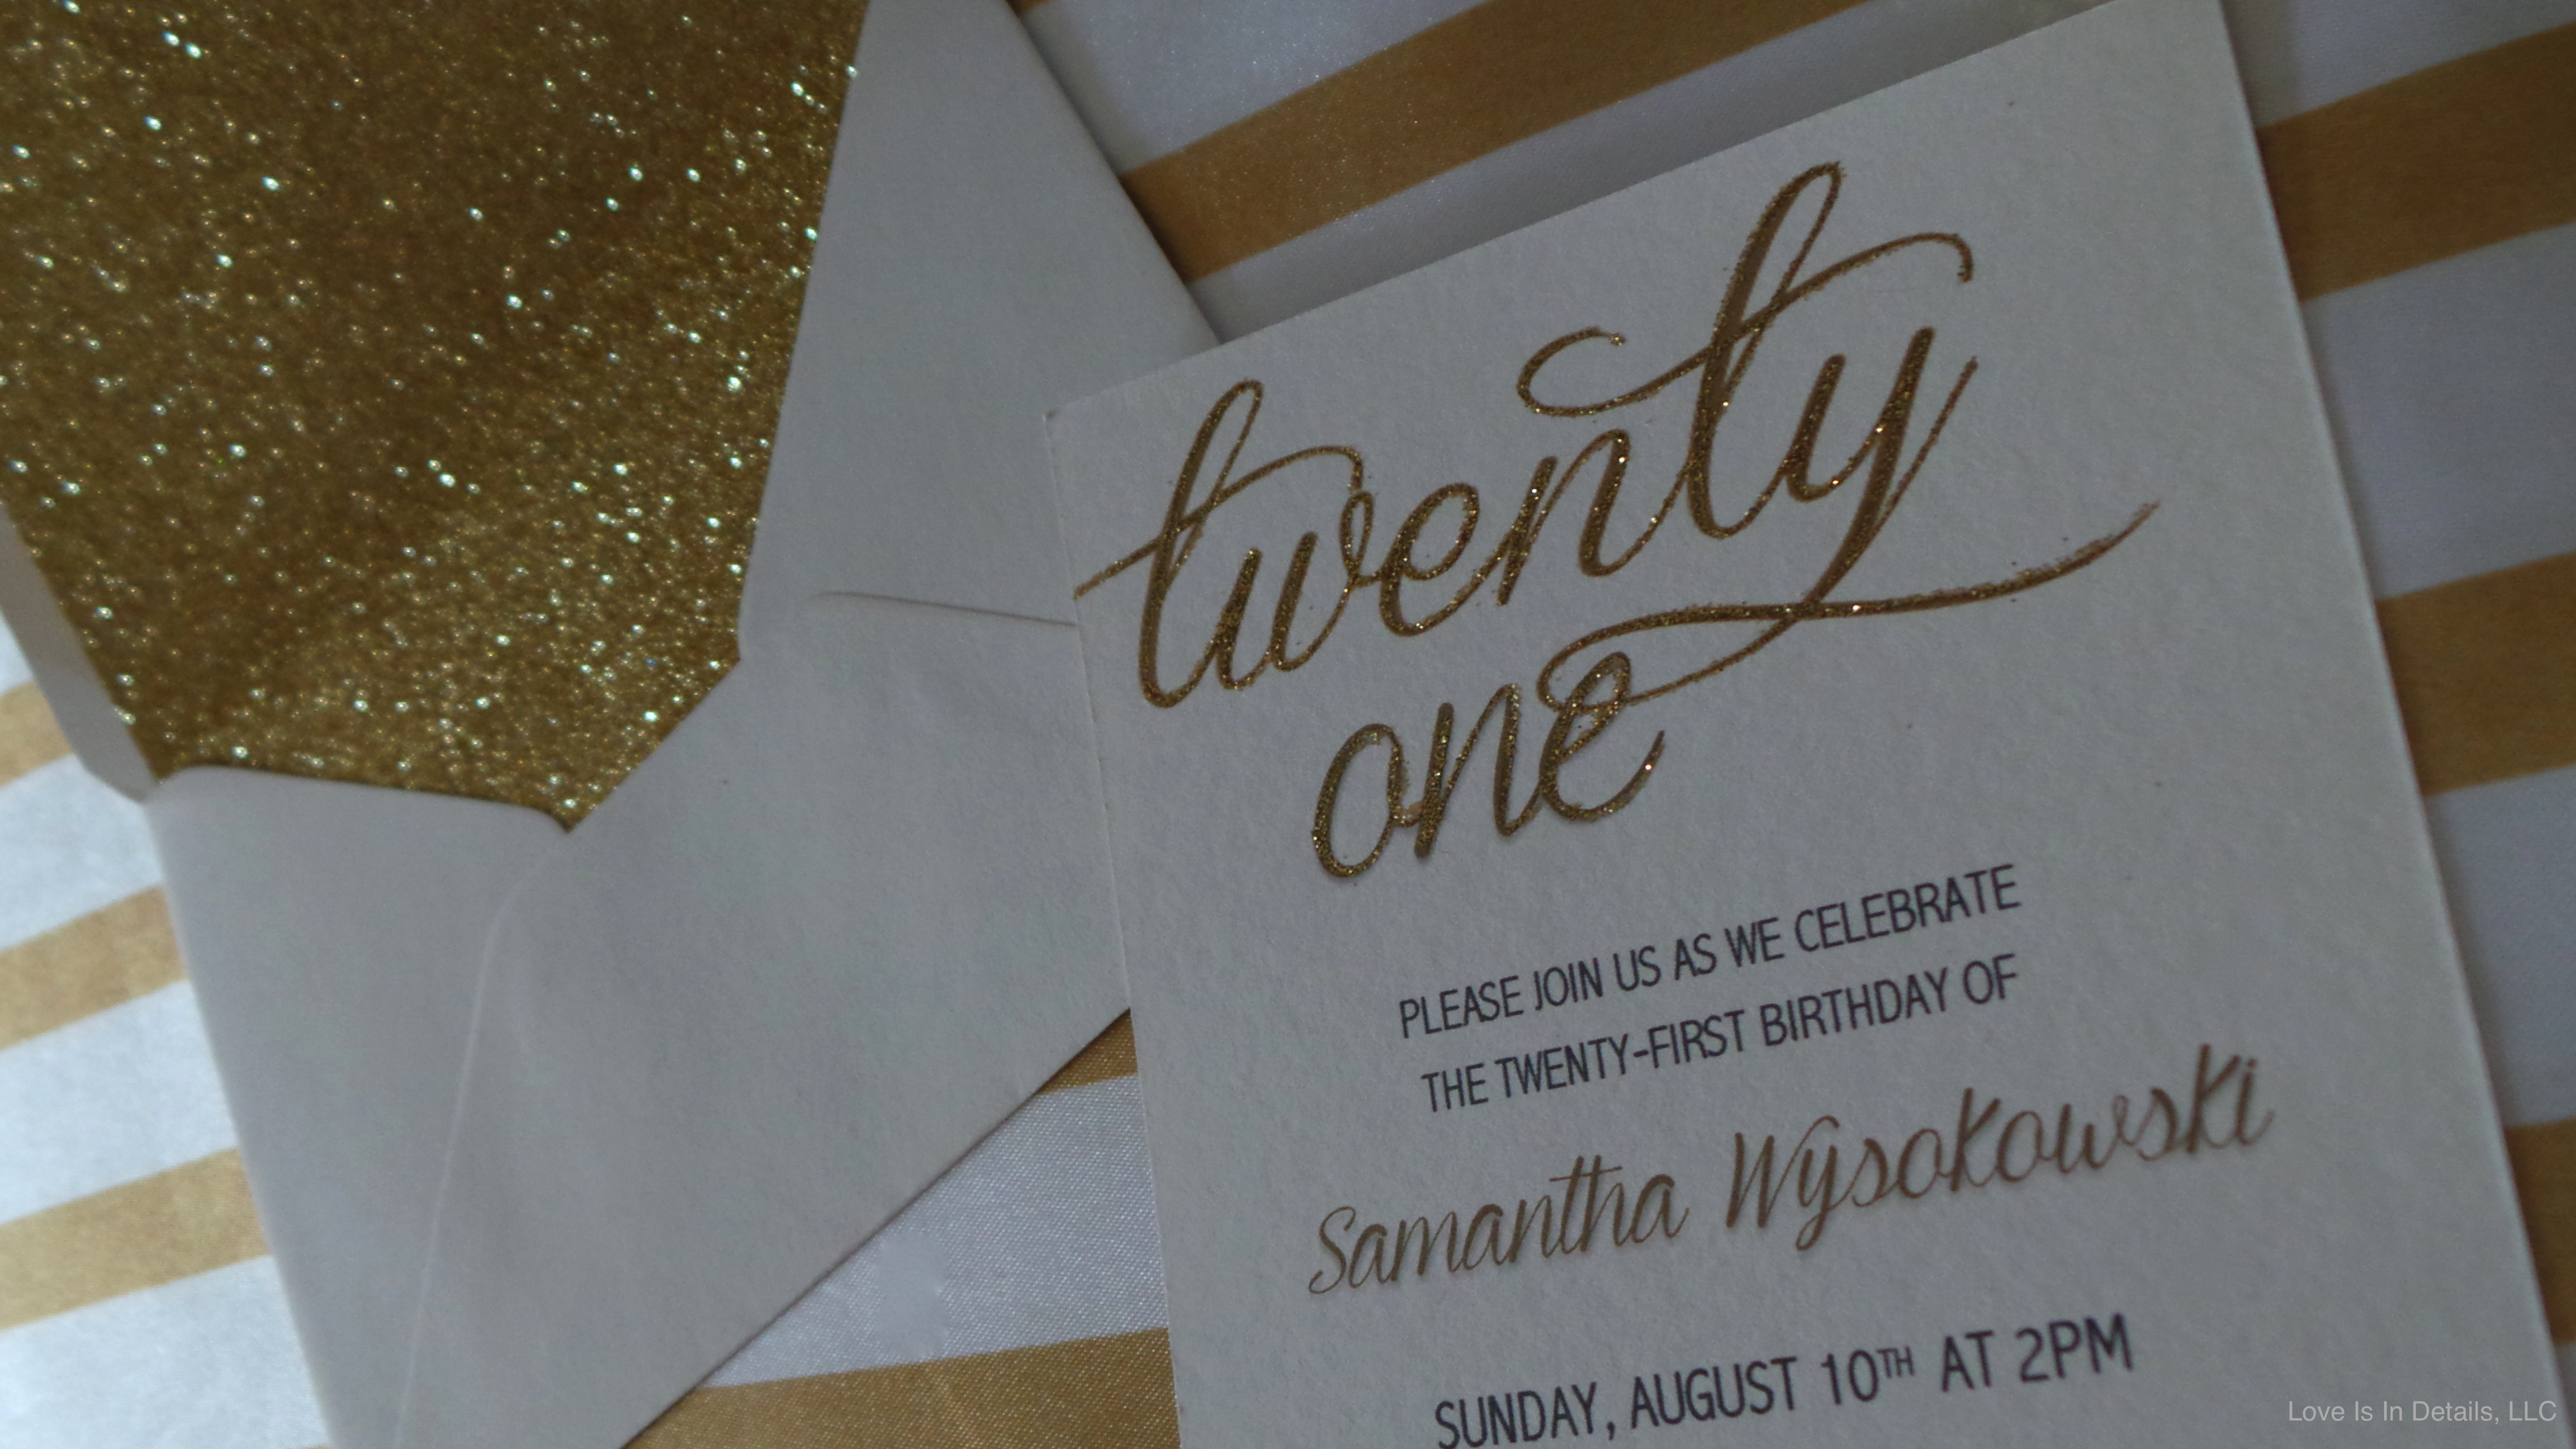 21st Birthday Invitations by Love Is In Details WWW.LOVEISINDETAILS ...